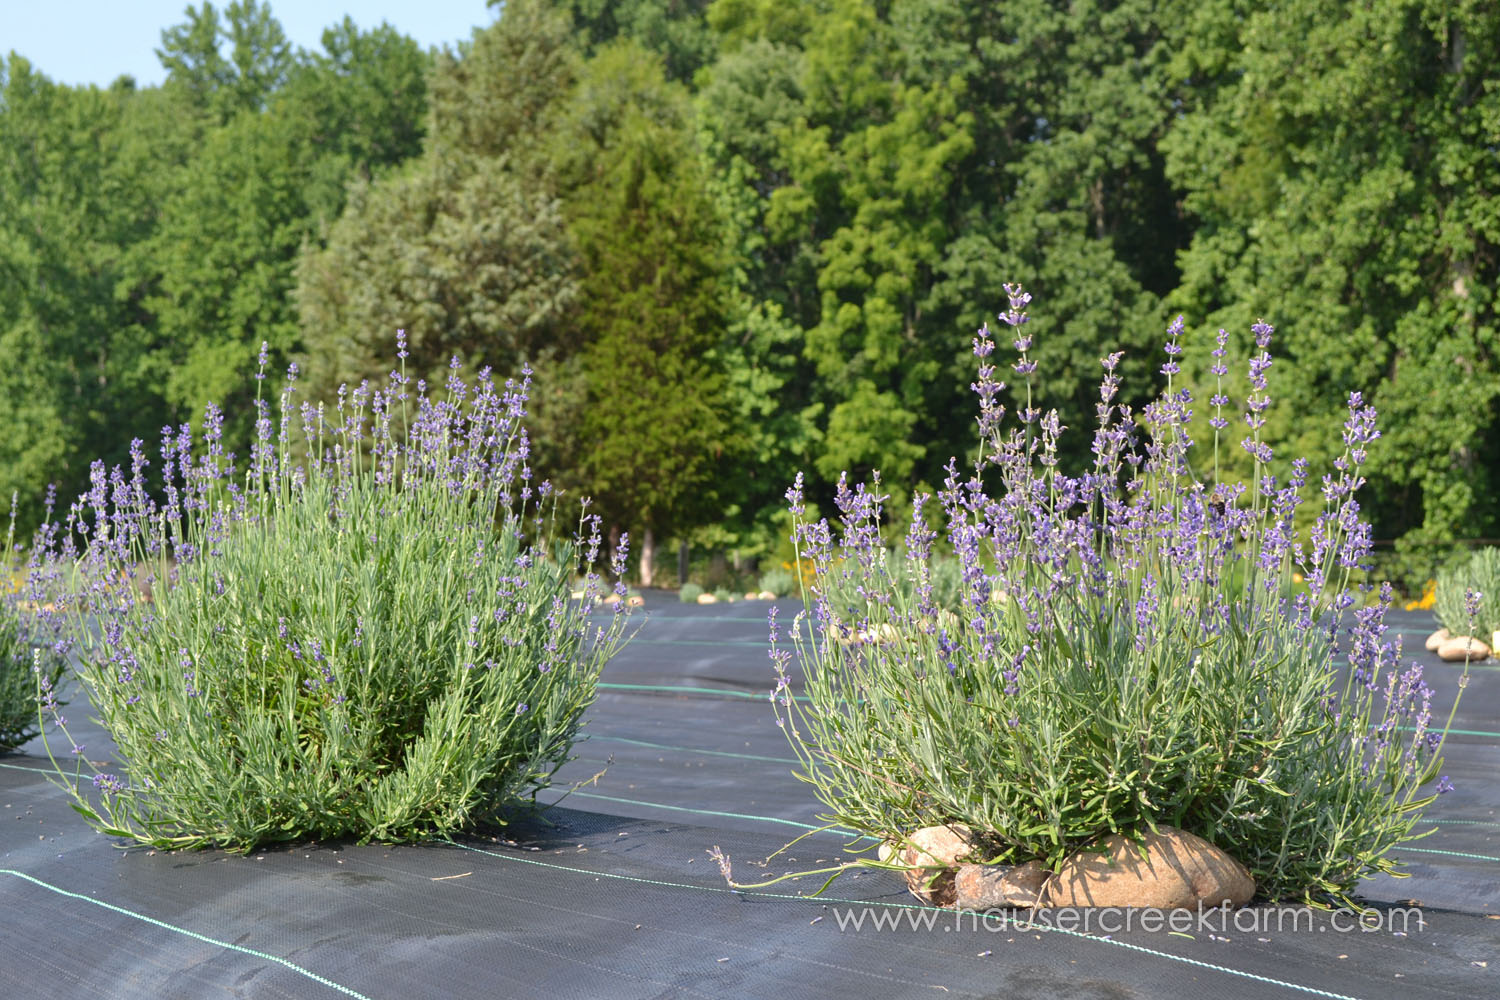 rows-of-purple-blossoms-of-lavender-plants-growing-at-hauser-creek-farm-DSC_0537.jpg